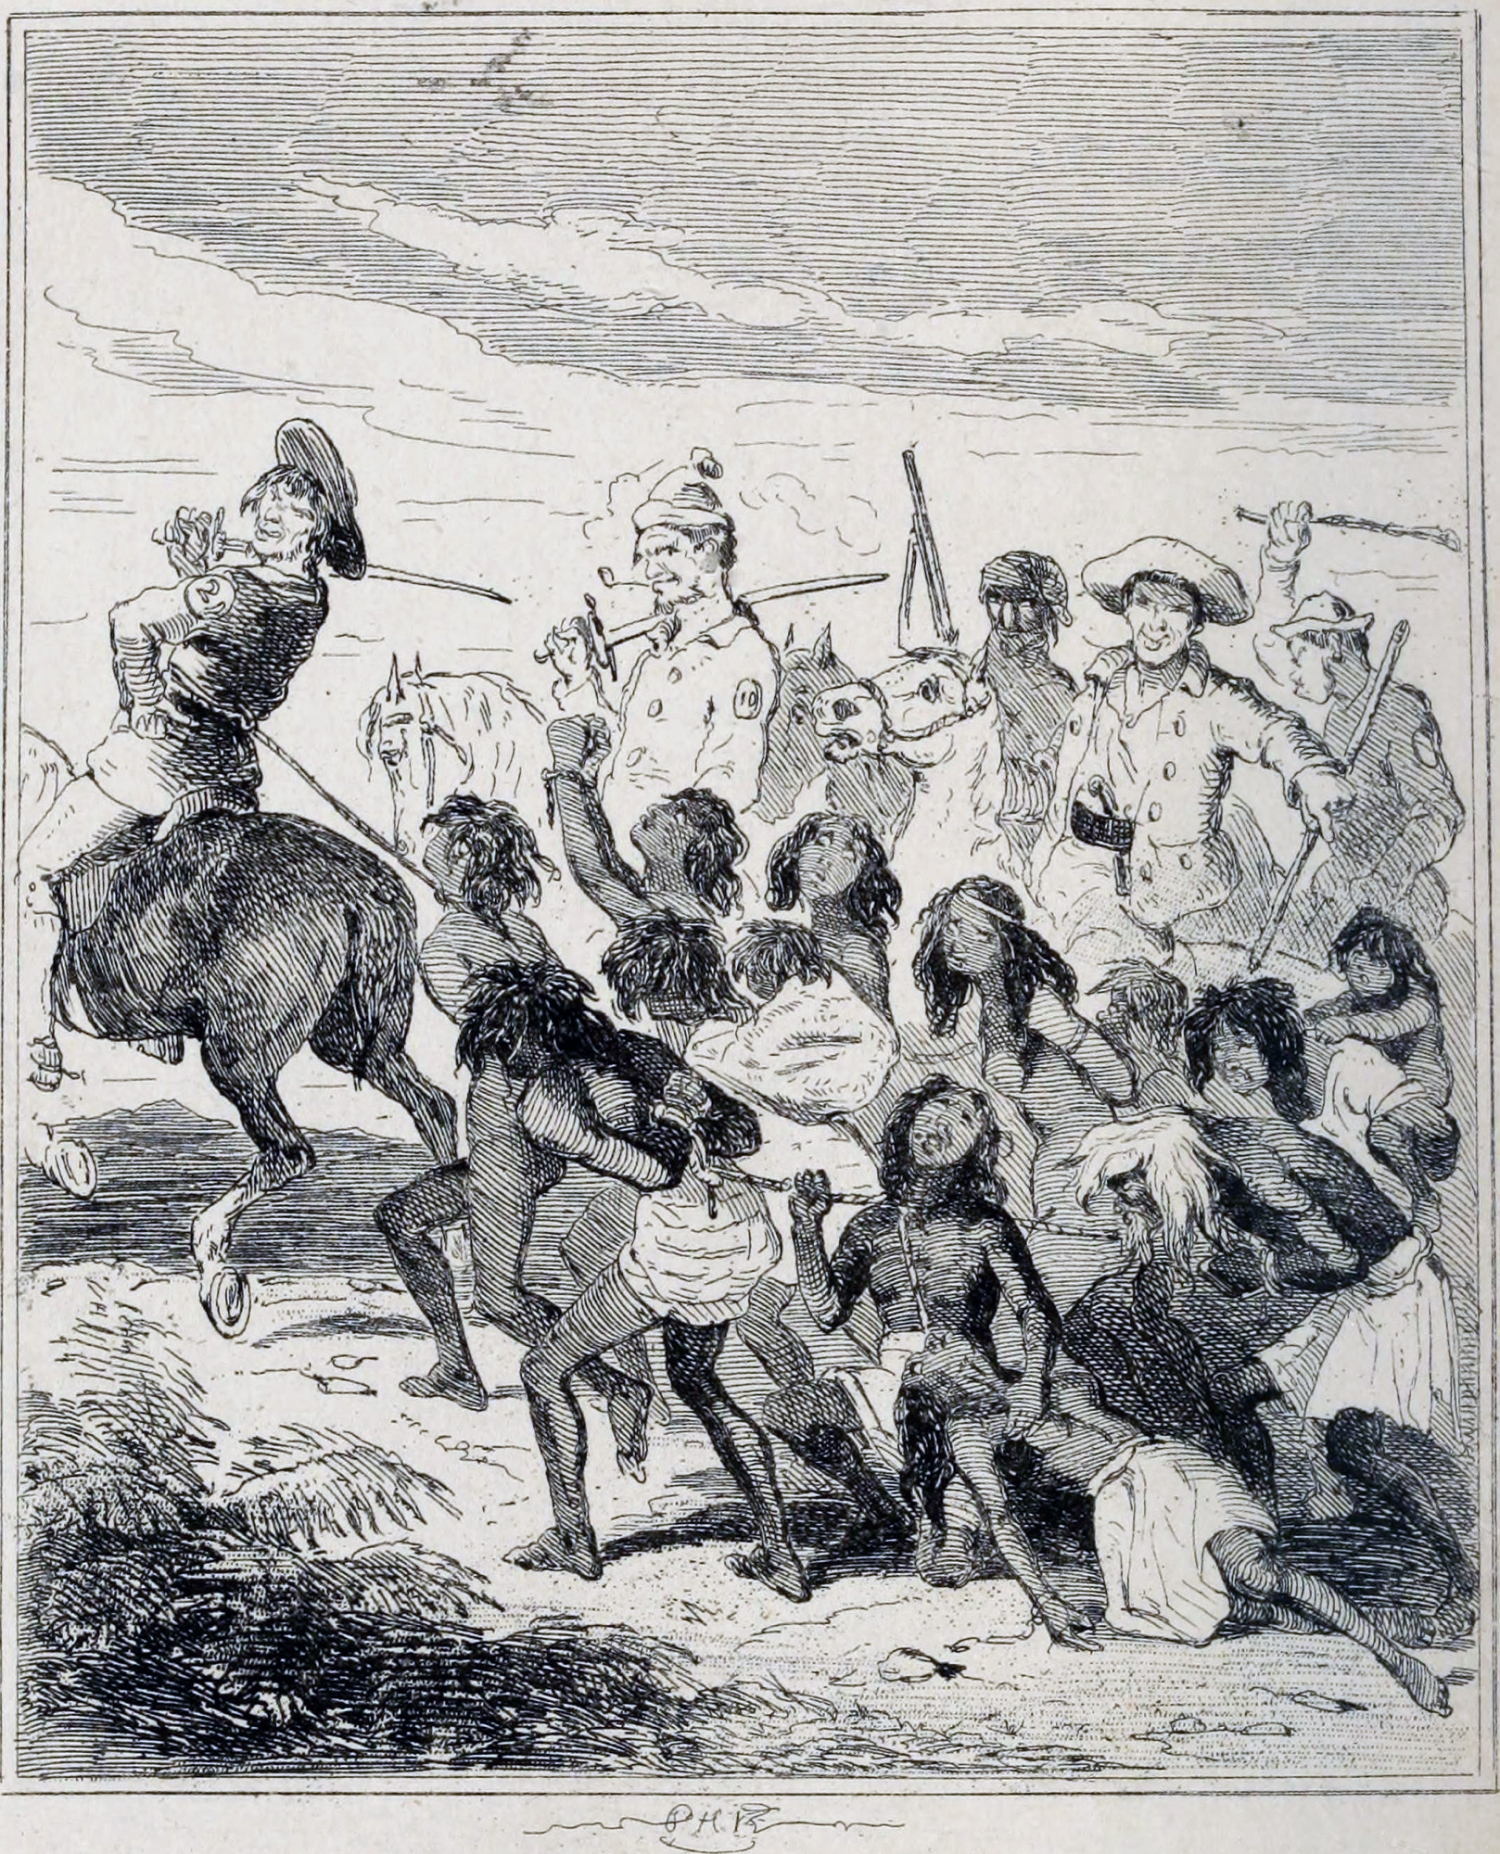 Print showing Aboriginal people being rounded up by men on horseback with weapons.